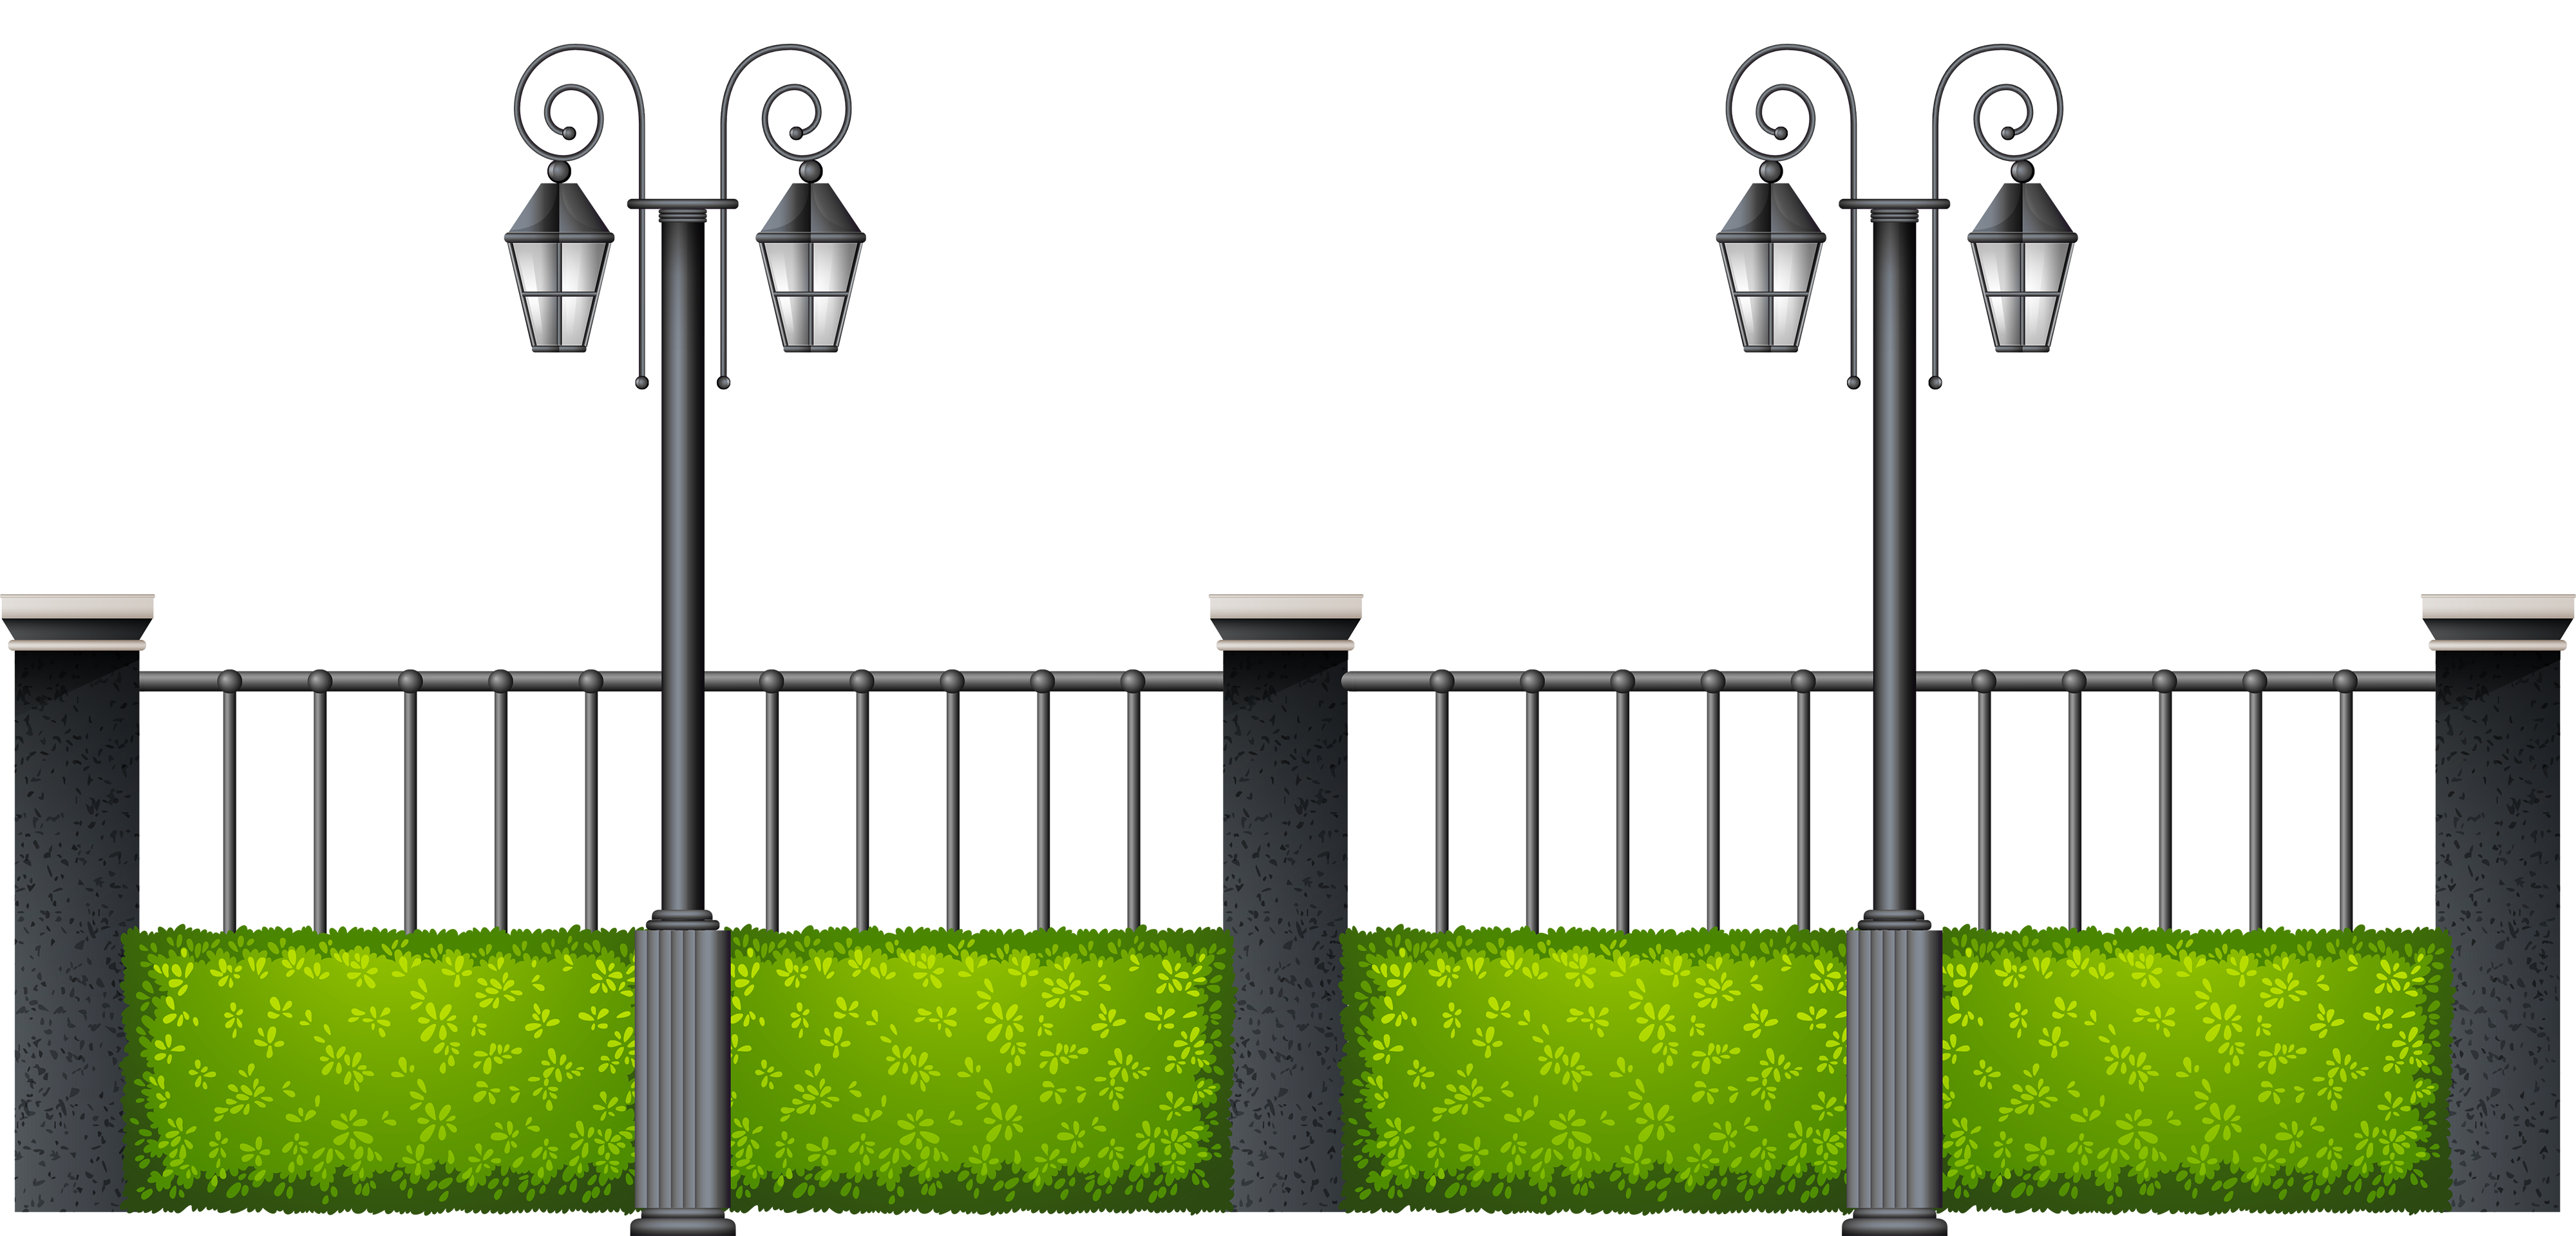 Fencing clipart fench. Fence png